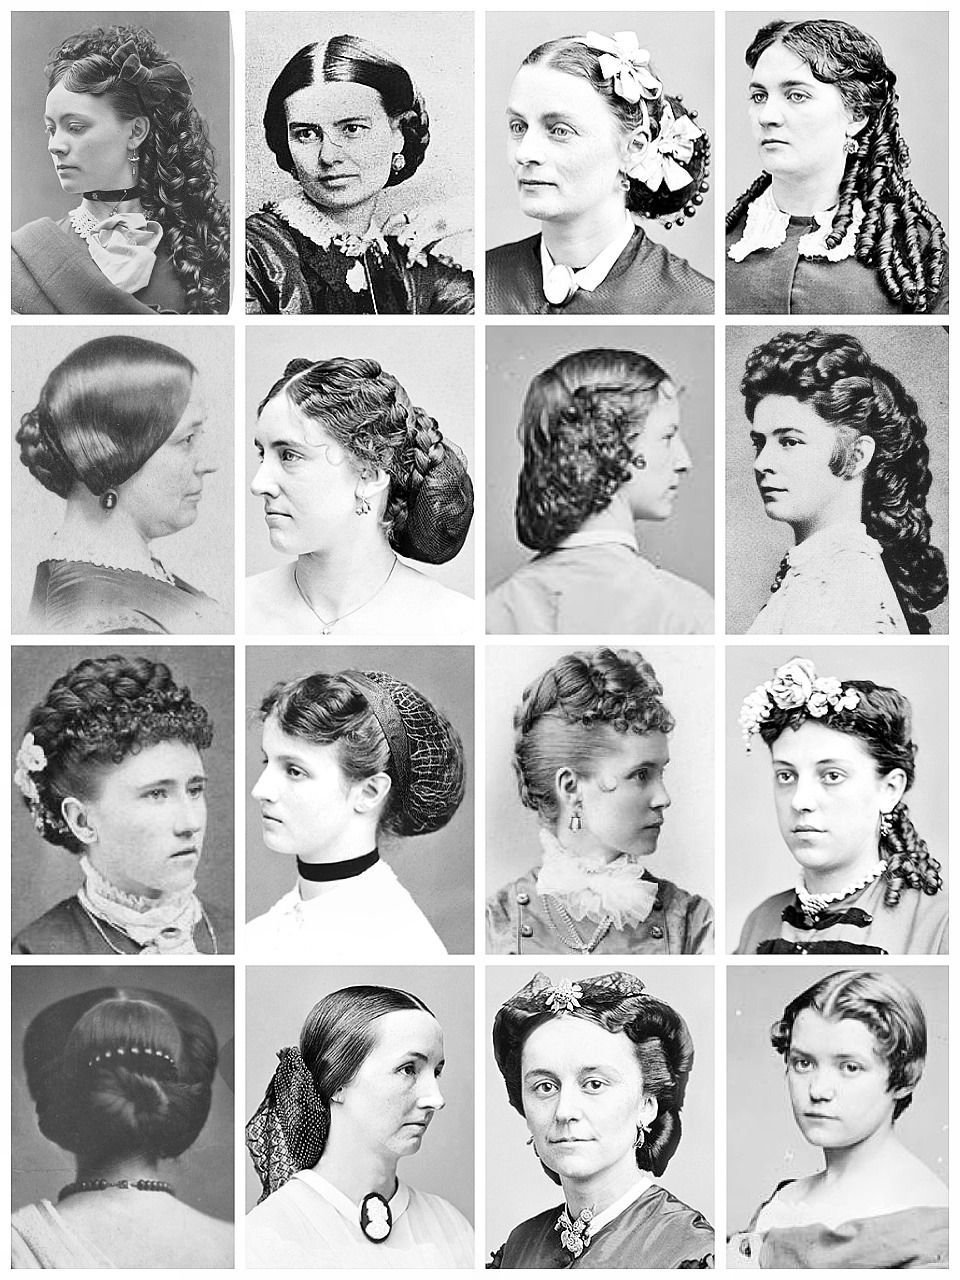 The Best Victorian Hairstyles A Collection Of Victorian Photographs Pictures